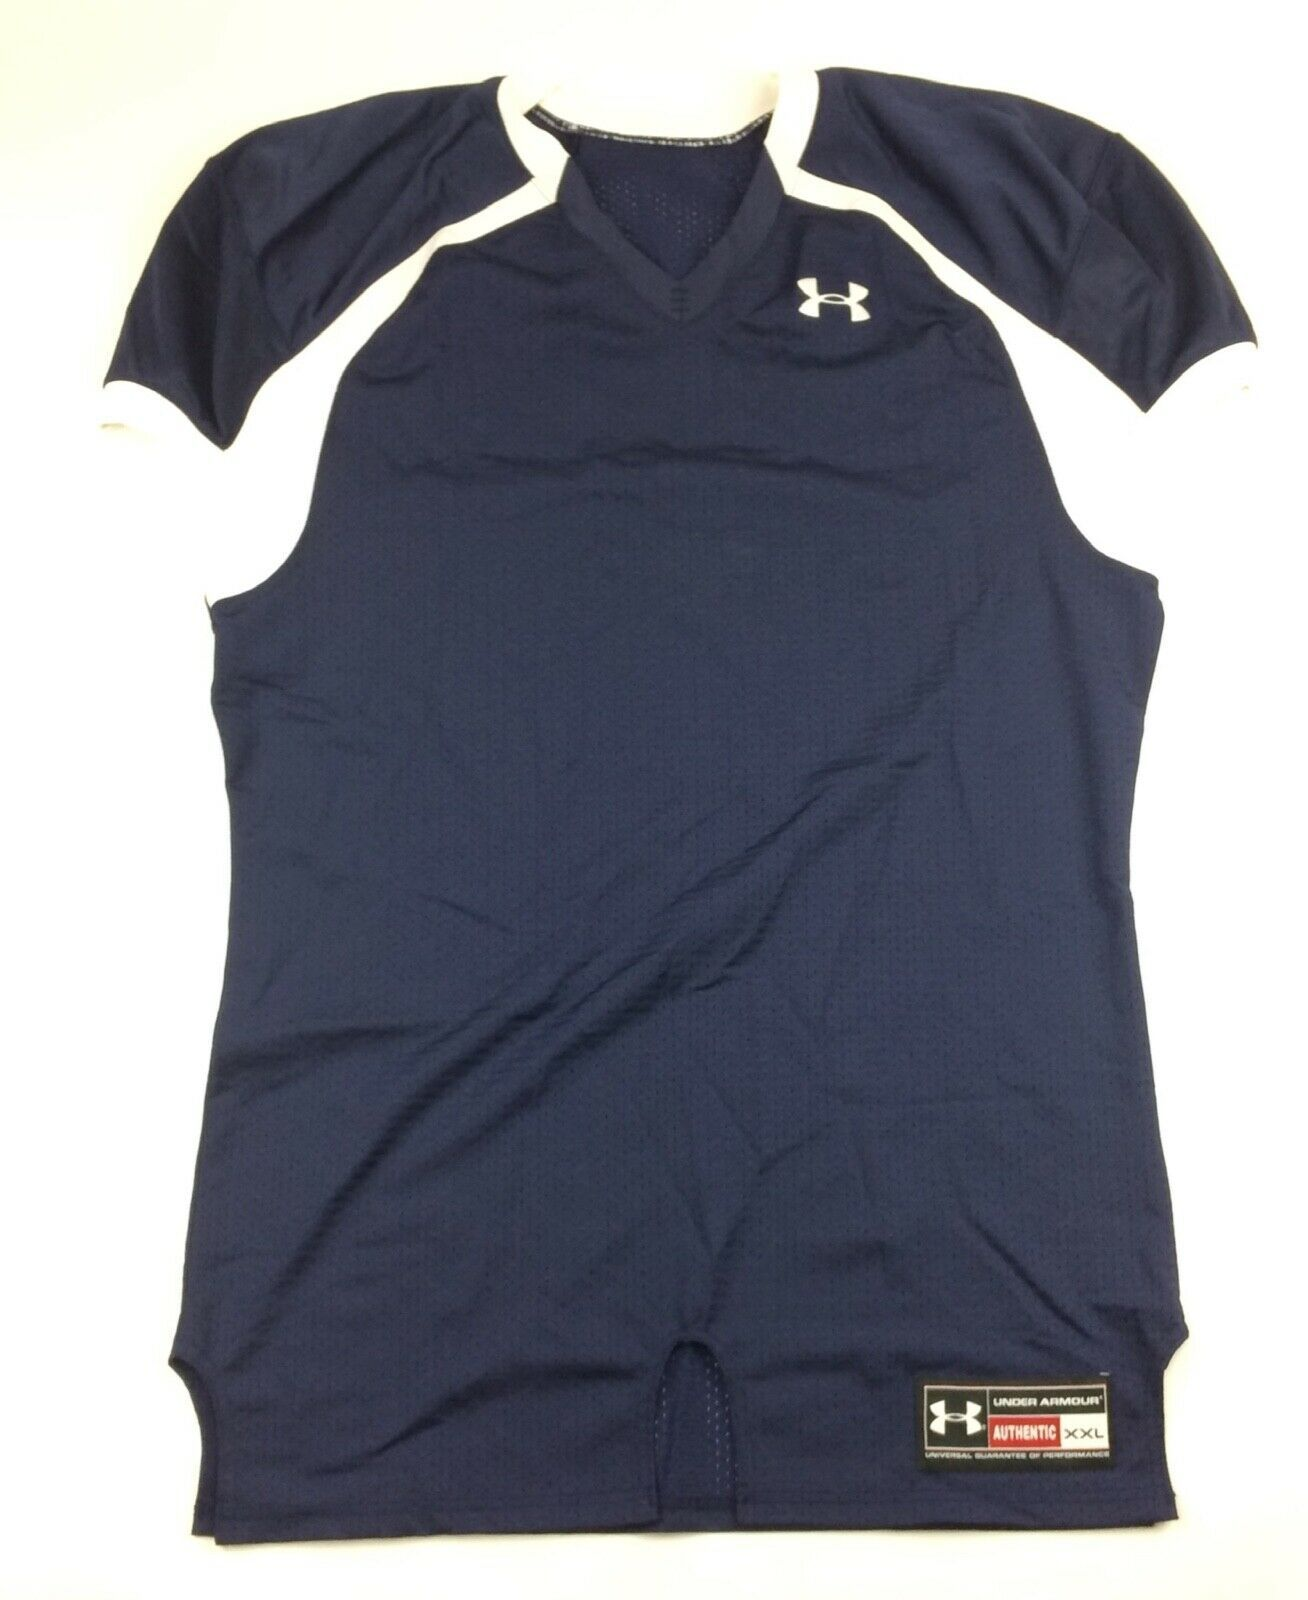 Primary image for New Under Armour Performance Football Jersey No Numbers Men's XXL Navy White